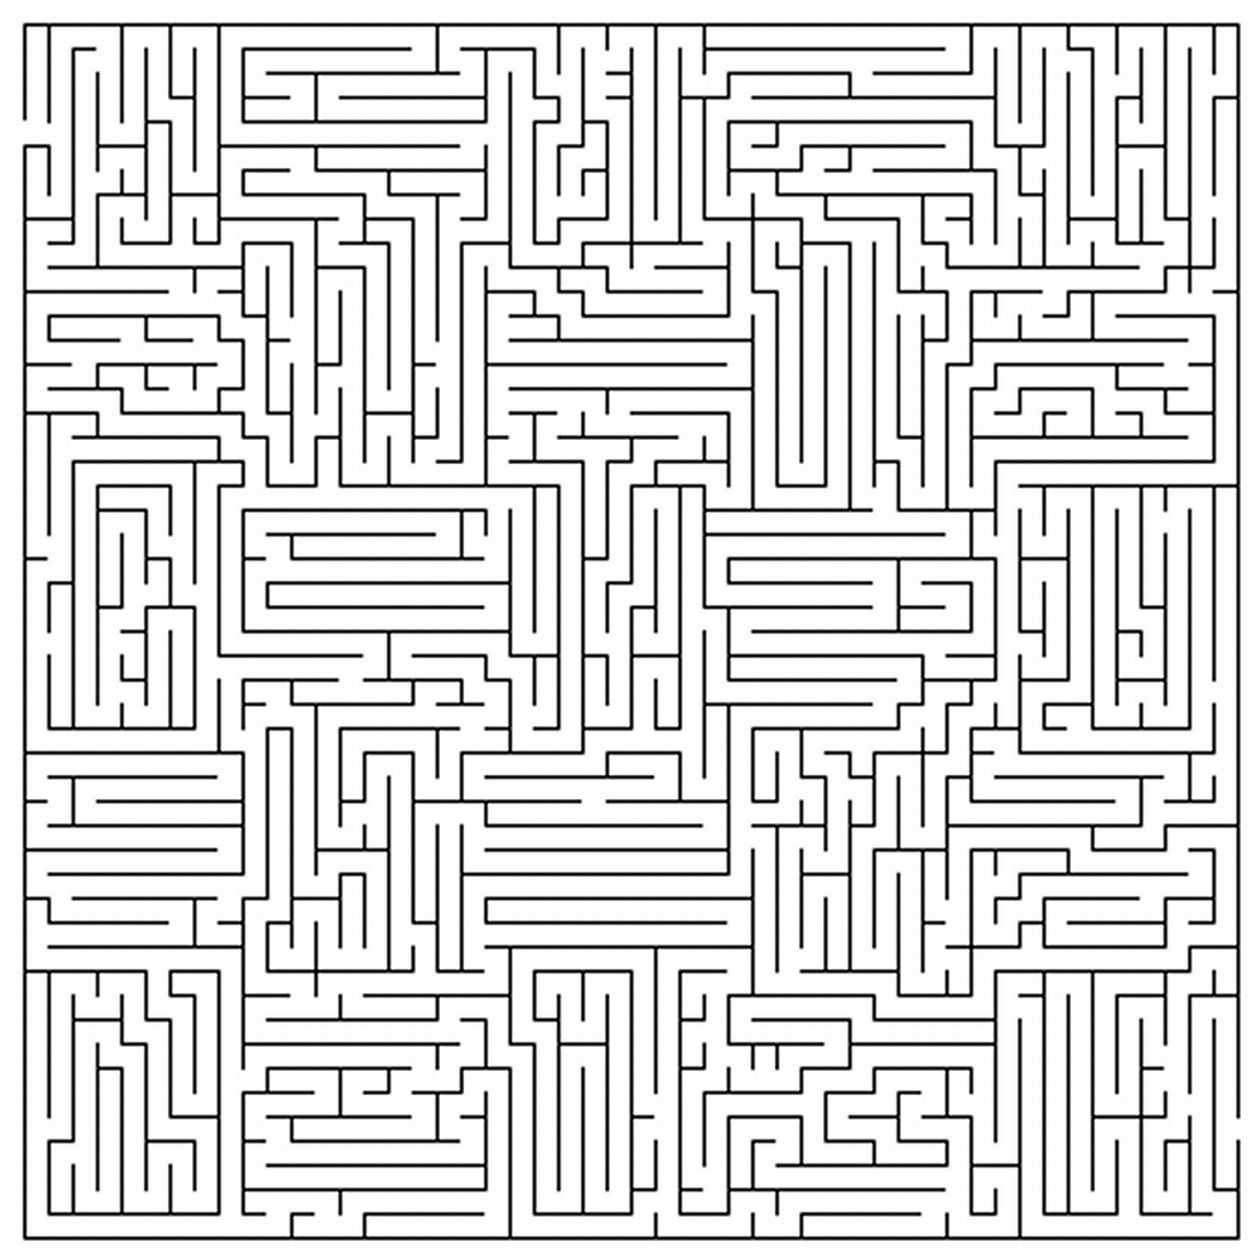 Uncategorized Hardest Maze Ever Printable pinterest maze homeschool and forensics very difficult mazes coloring page